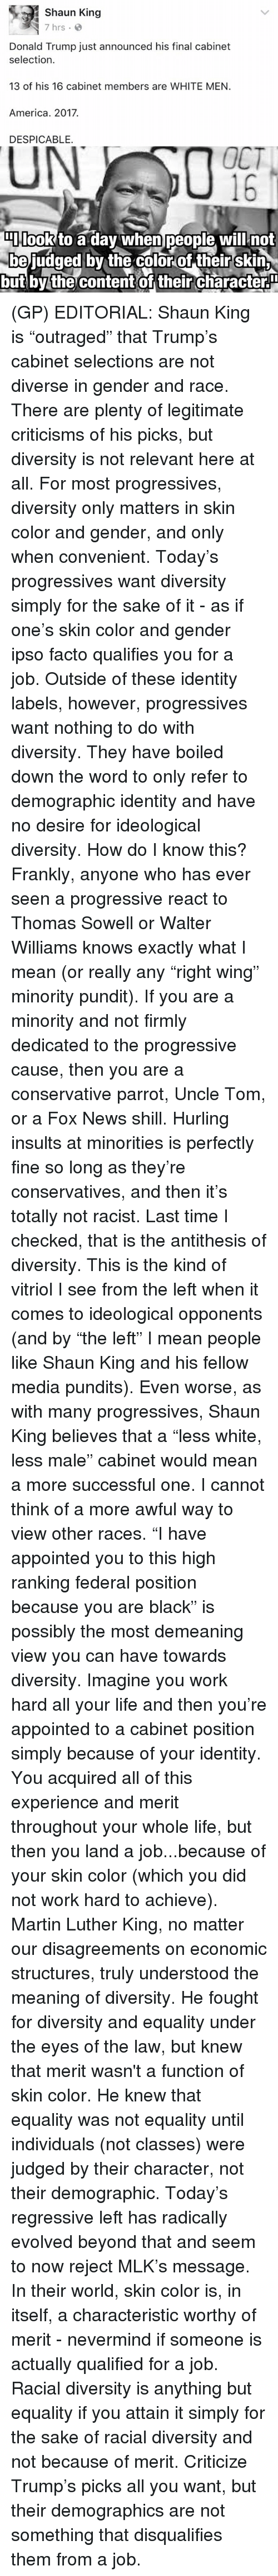 """Dank, Shaun King, and Evolve: Shaun King  7 hrs.  Donald Trump just announced his final cabinet  selection.  13 of his 16 cabinet members are WHITE MEN.  America. 2017.  DESPICABLE.  OCT  DIIlook to a dav When people will not  be judged by the color of their skin  but by the content of their characteru (GP) EDITORIAL: Shaun King is """"outraged"""" that Trump's cabinet selections are not diverse in gender and race. There are plenty of legitimate criticisms of his picks, but diversity is not relevant here at all. For most progressives, diversity only matters in skin color and gender, and only when convenient.   Today's progressives want diversity simply for the sake of it - as if one's skin color and gender ipso facto qualifies you for a job. Outside of these identity labels, however, progressives want nothing to do with diversity. They have boiled down the word to only refer to demographic identity and have no desire for ideological diversity.   How do I know this? Frankly, anyone who has ever seen a progressive react to Thomas Sowell or Walter Williams knows exactly what I mean (or really any """"right wing"""" minority pundit). If you are a minority and not firmly dedicated to the progressive cause, then you are a conservative parrot, Uncle Tom, or a Fox News shill. Hurling insults at minorities is perfectly fine so long as they're conservatives, and then it's totally not racist.  Last time I checked, that is the antithesis of diversity. This is the kind of vitriol I see from the left when it comes to ideological opponents (and by """"the left"""" I mean people like Shaun King and his fellow media pundits).   Even worse, as with many progressives, Shaun King believes that a """"less white, less male"""" cabinet would mean a more successful one. I cannot think of a more awful way to view other races. """"I have appointed you to this high ranking federal position because you are black"""" is possibly the most demeaning view you can have towards diversity. Imagine you work hard all your life and """